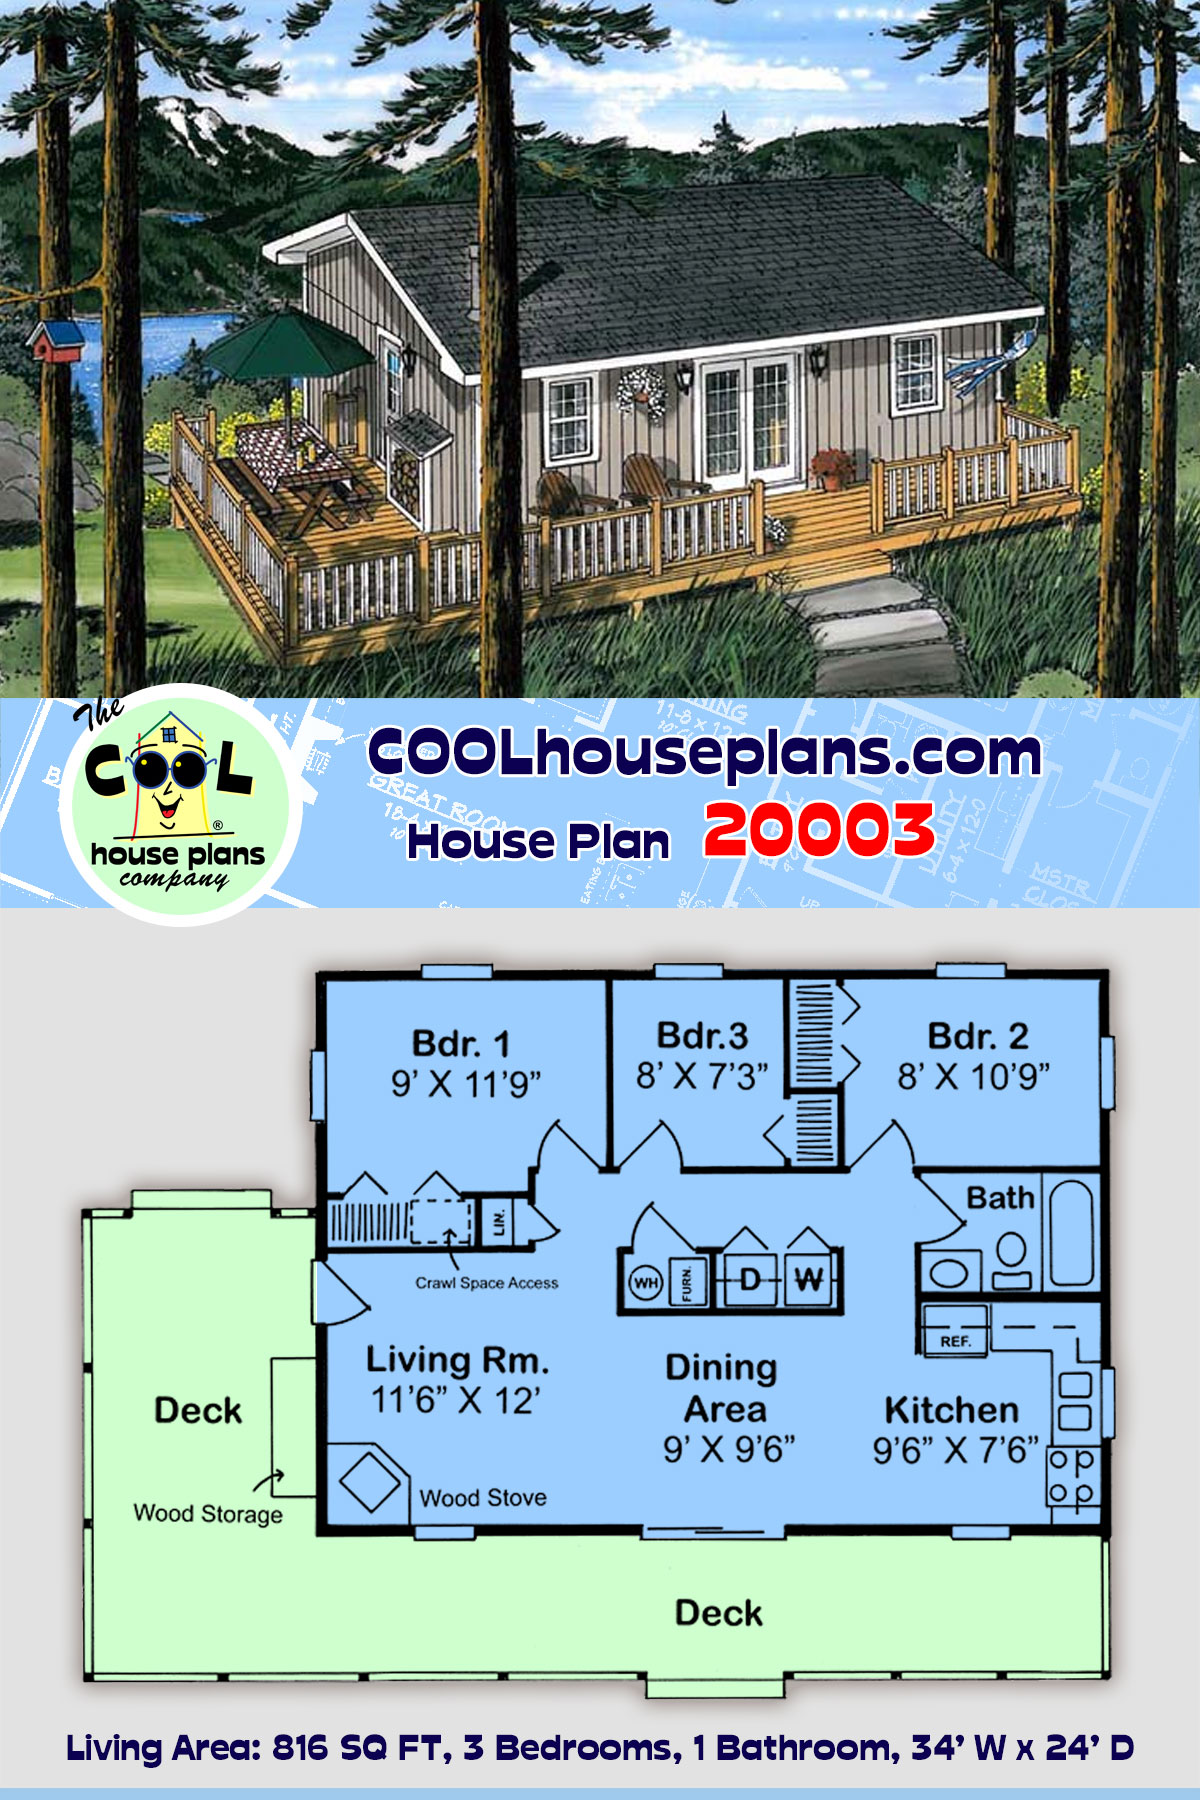 Cabin, Traditional House Plan 20003 with 3 Beds, 1 Baths